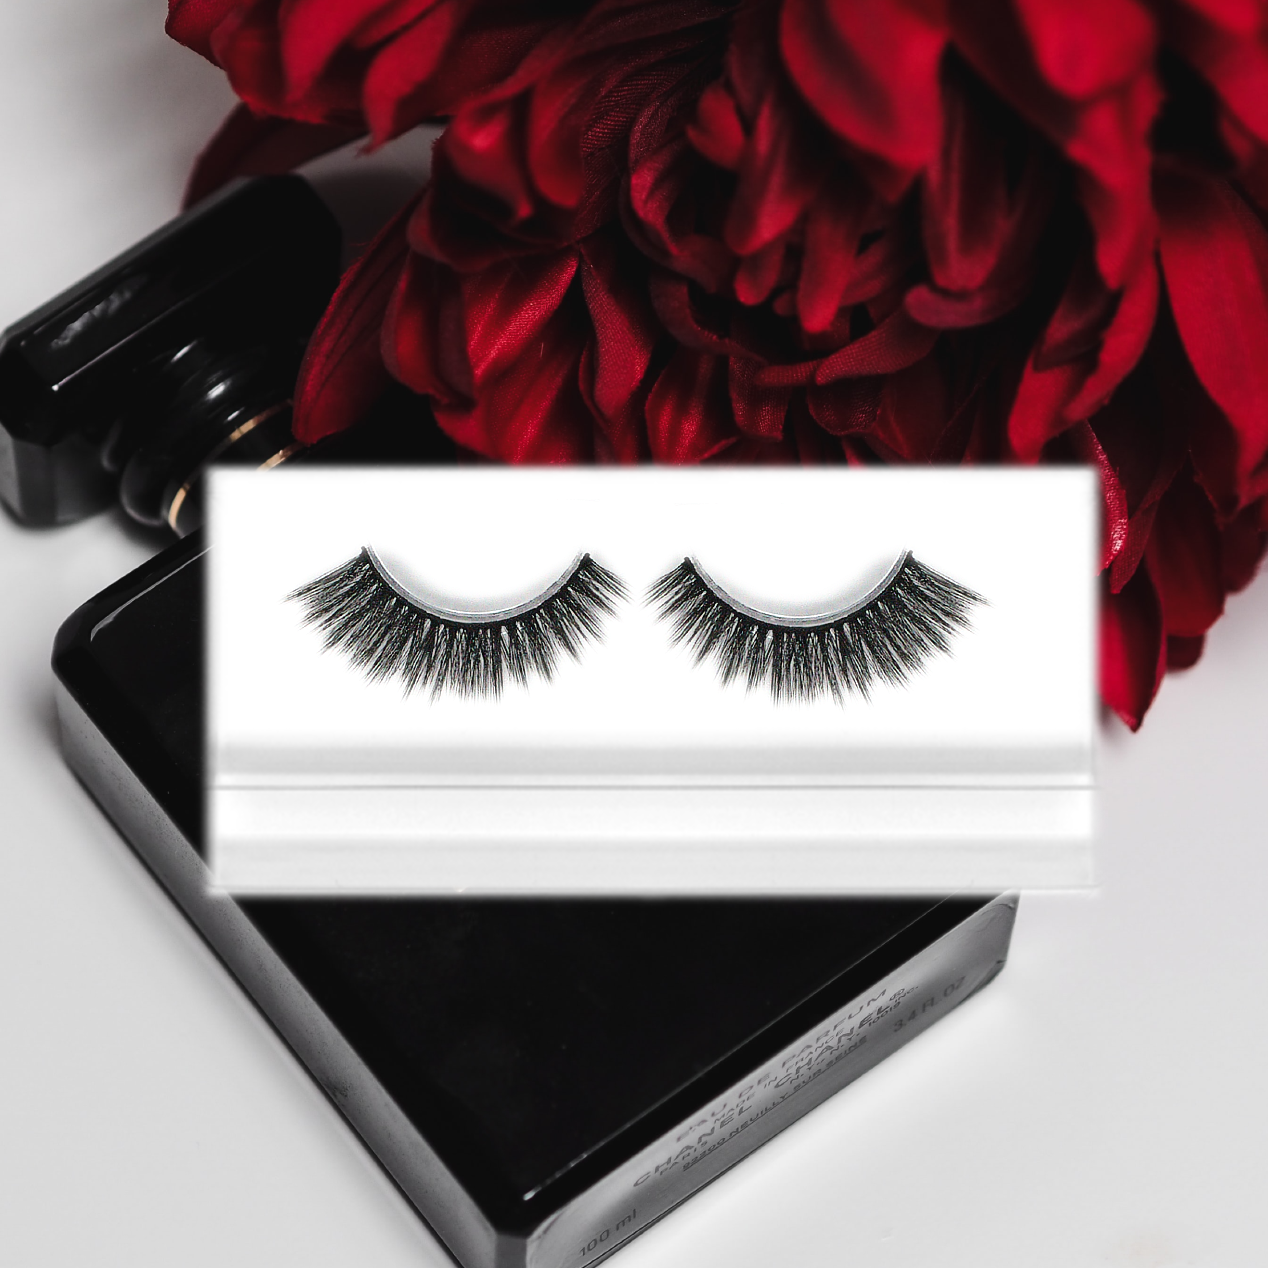 heartbreaker cat-eyed fashion fluttery lashes with perfume red rose design